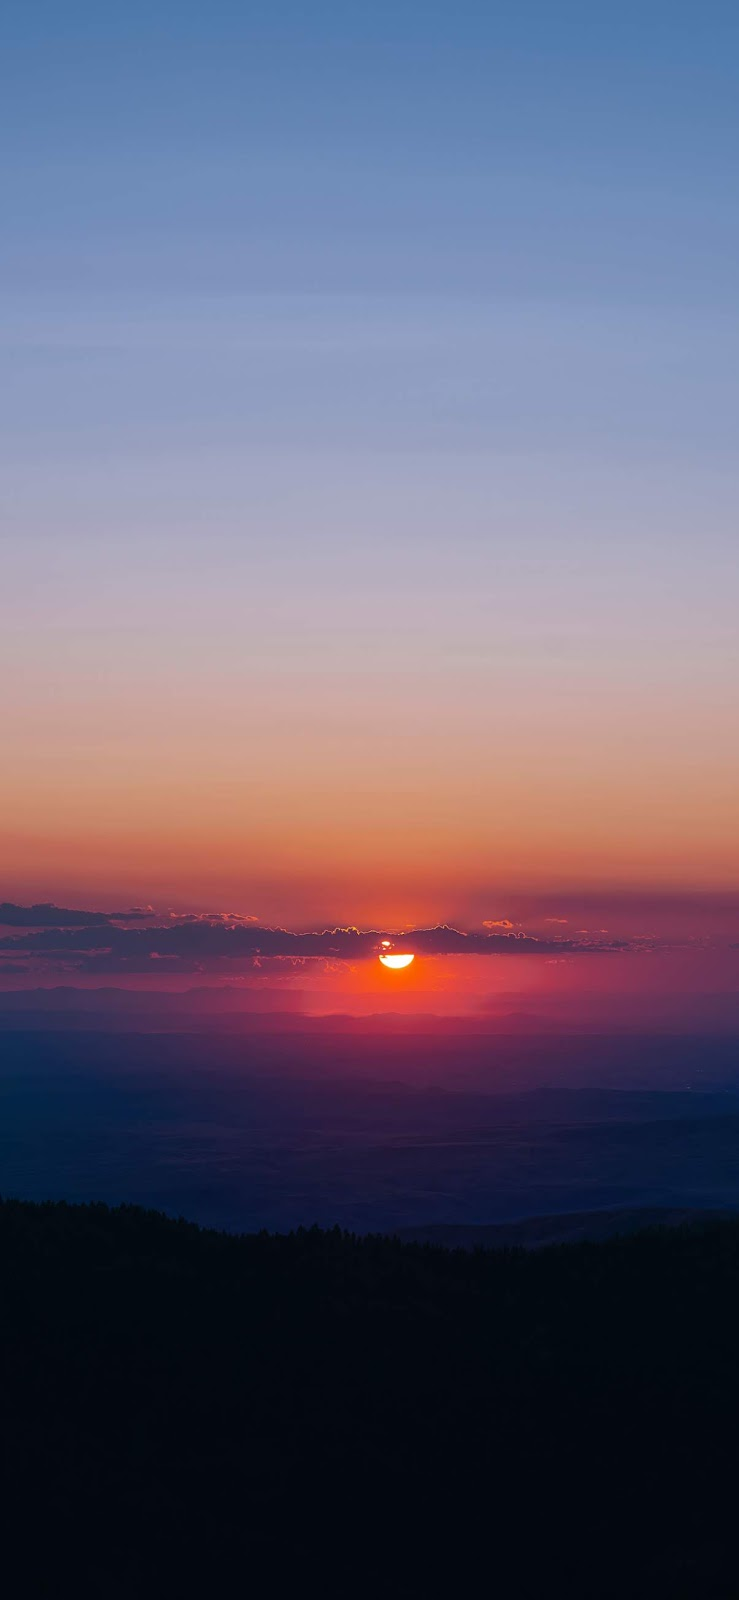 Sunset wallpaper iphone 11